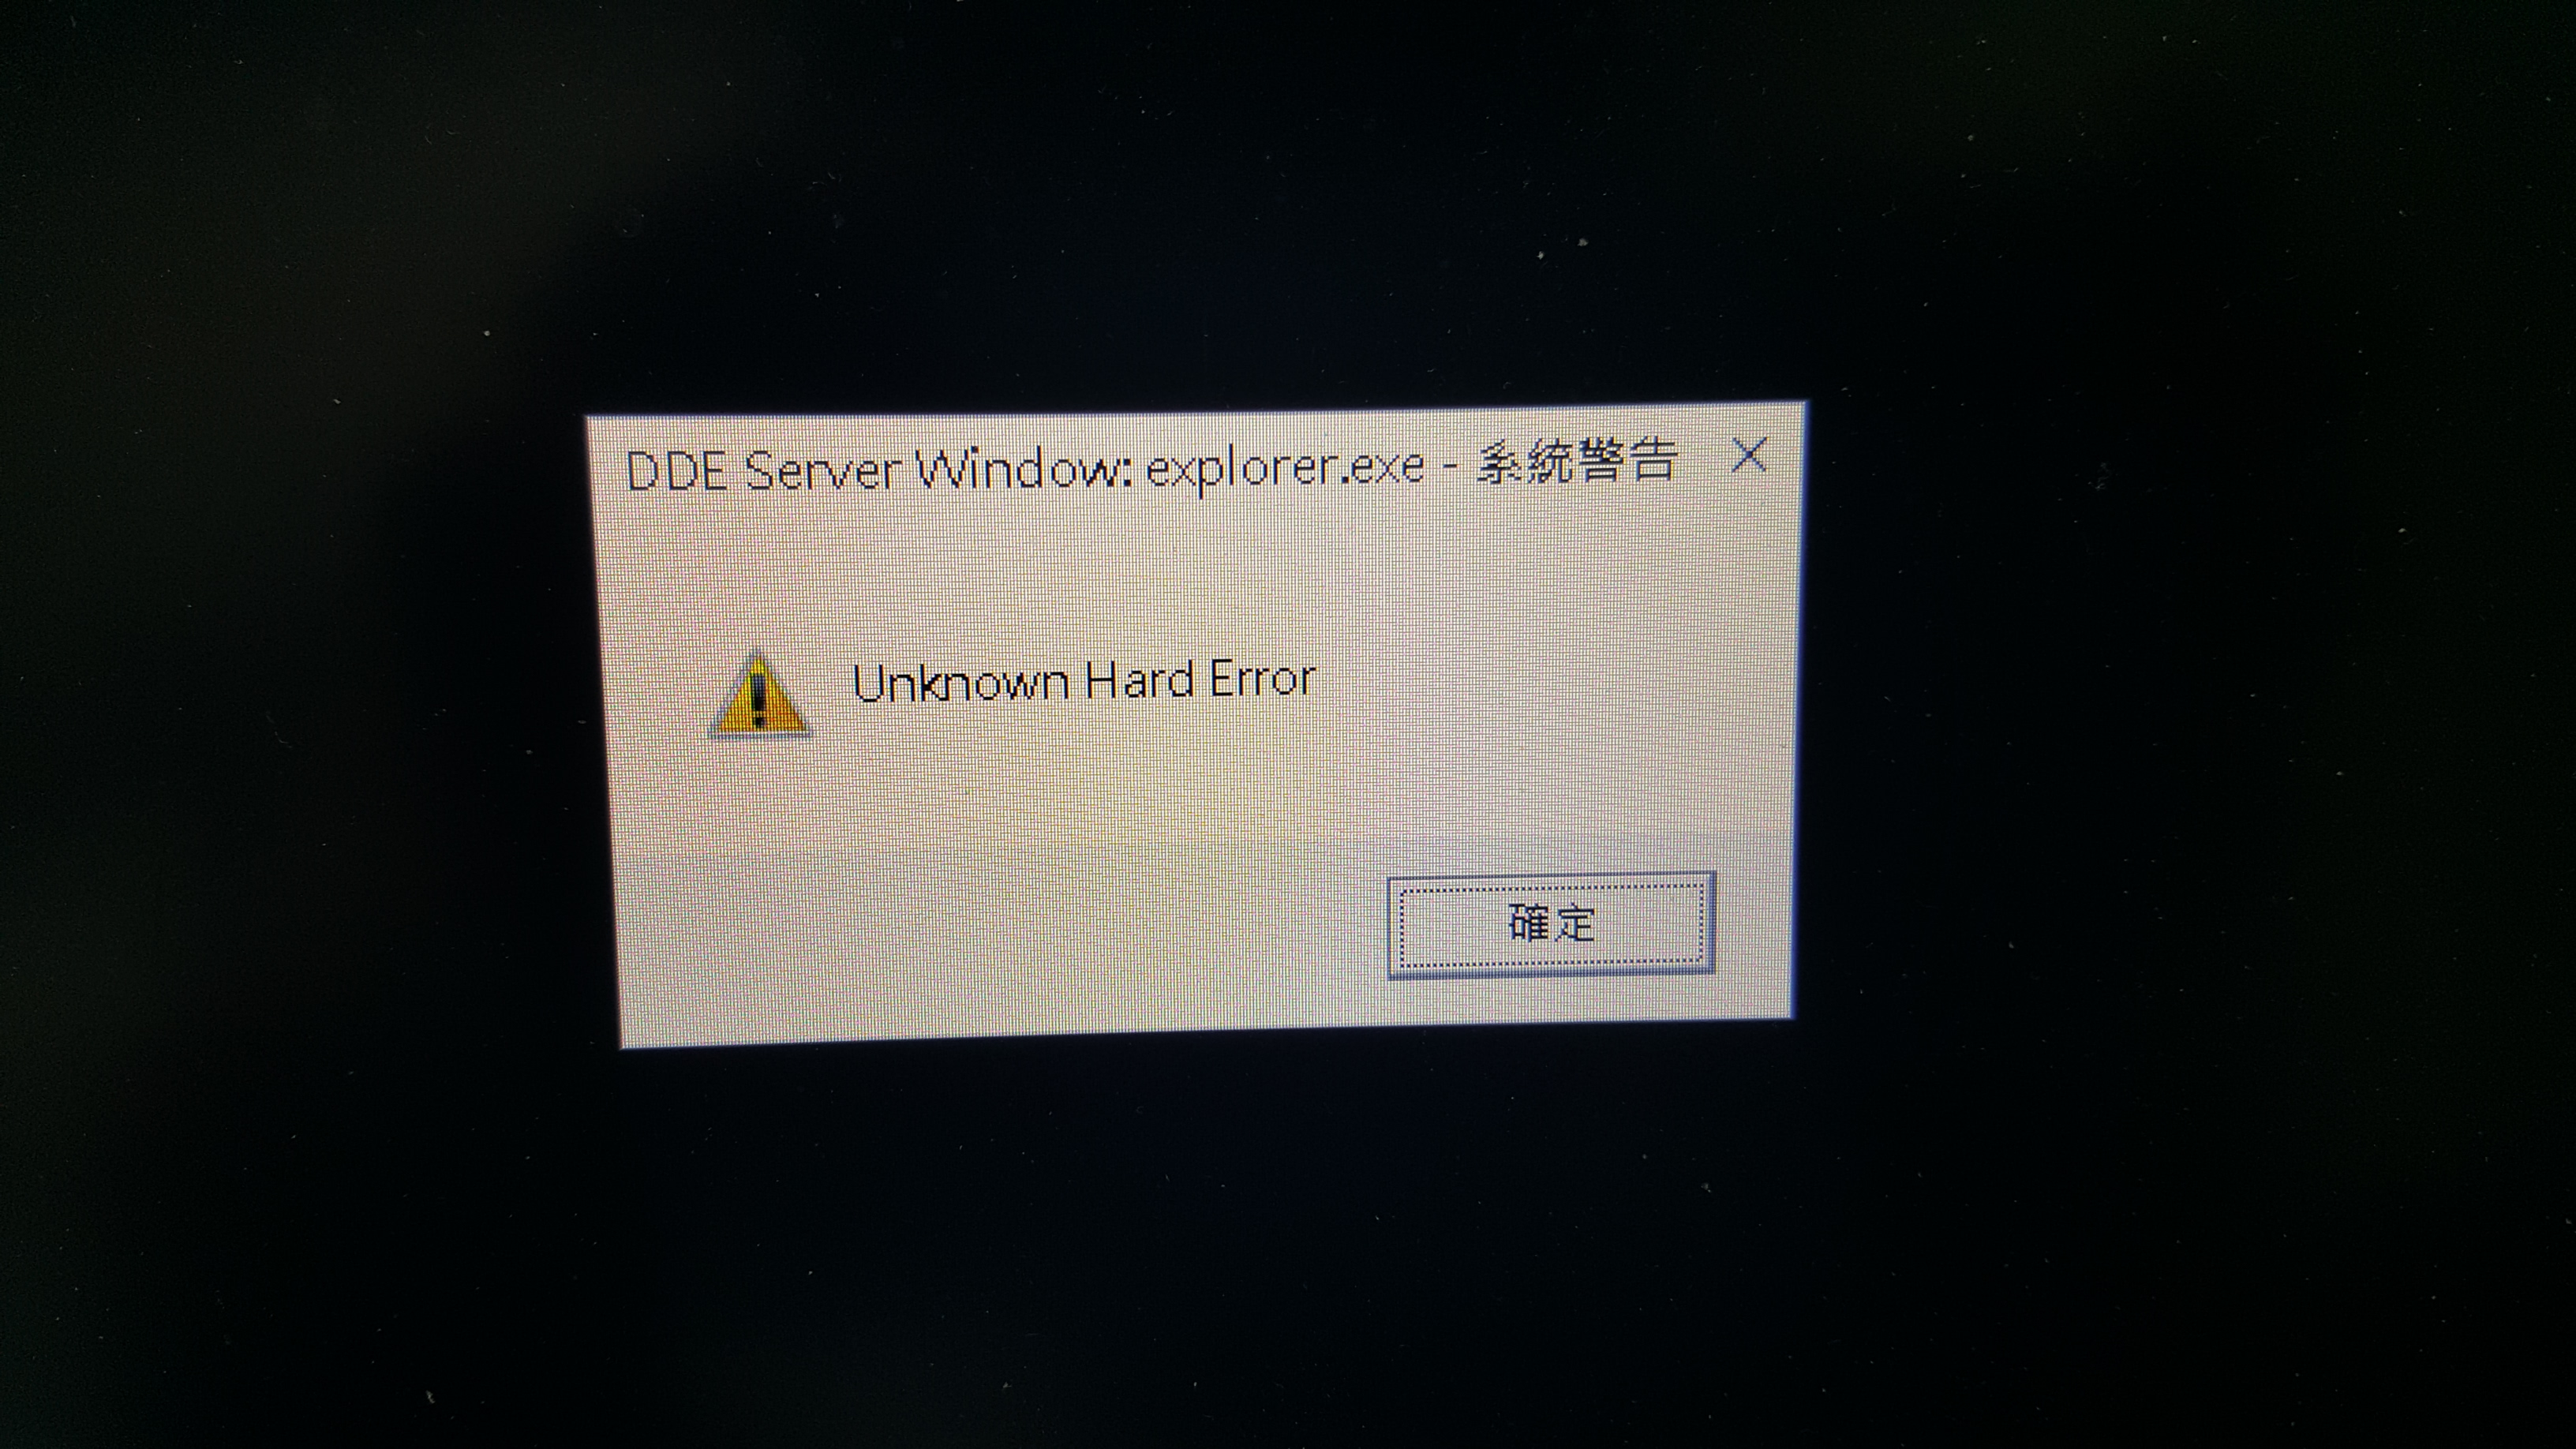 win 10 explorer.exe unknown hard error